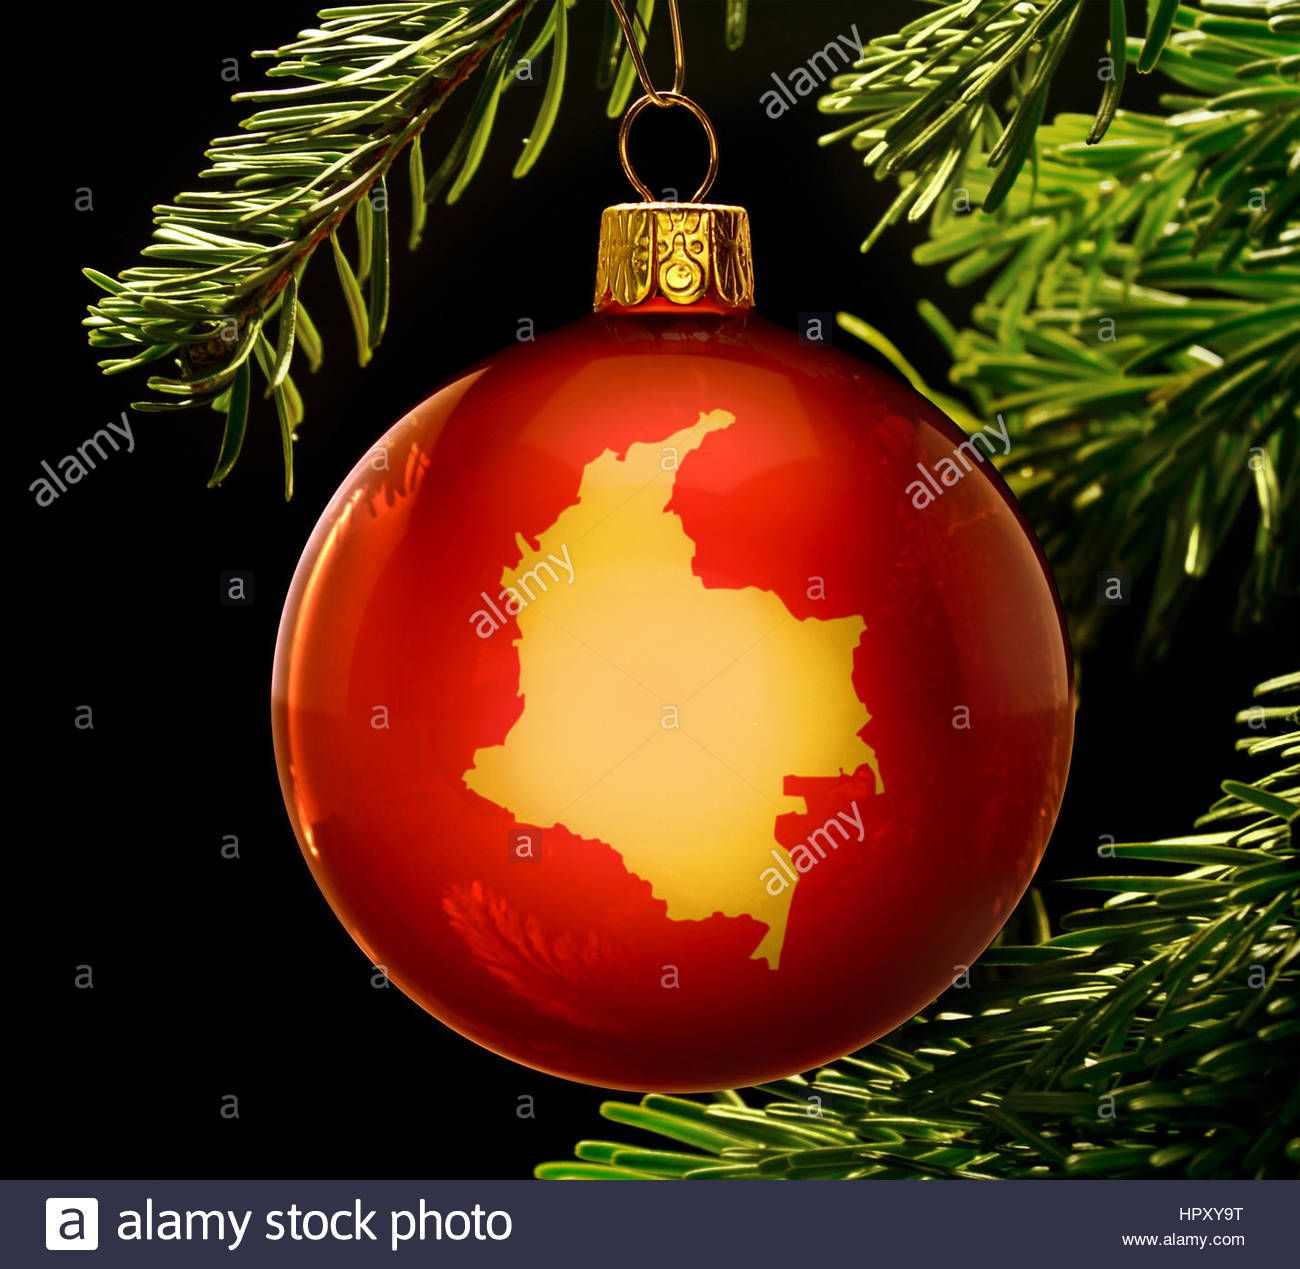 Http Www Alamy Com Stock Photo A Red Bauble With The Golden Shape Of Colombia Hanging On A Christmas 134587204 Html Christmas Bulbs Christmas Shapes